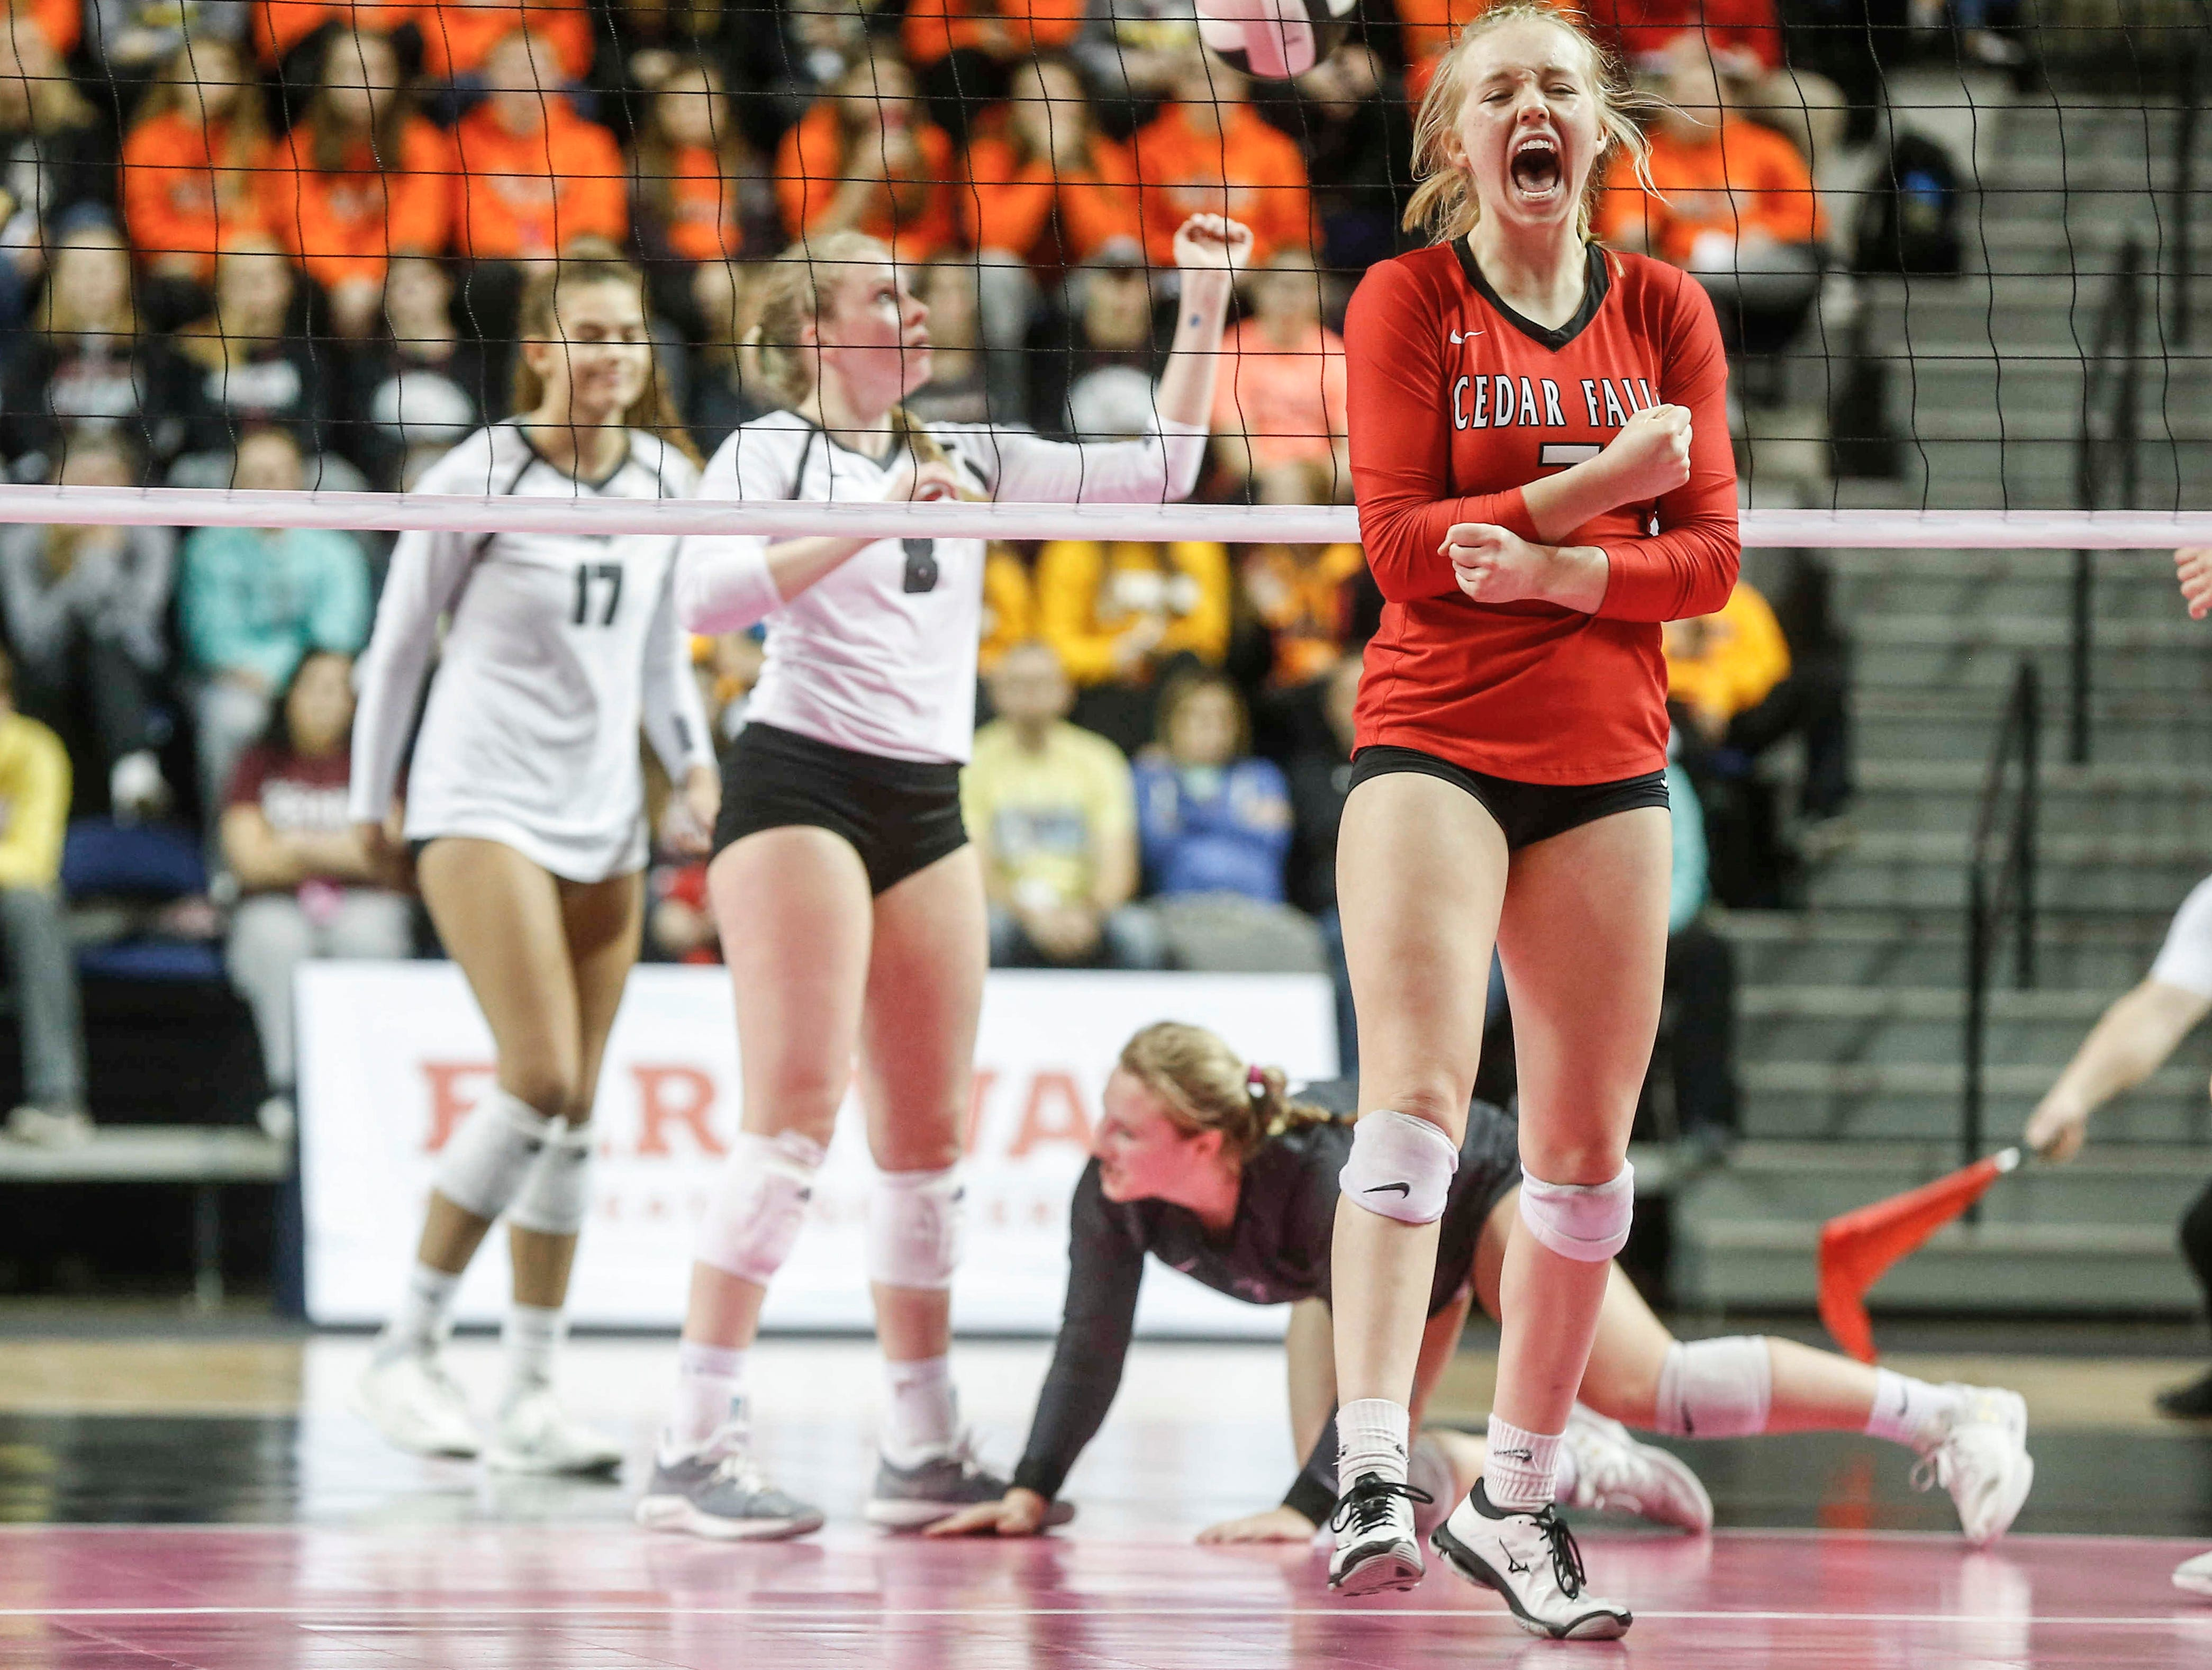 Cedar Falls' Dara Hulstein reacts after scoring a point against Ankeny Centennial during the Class 5A state volleyball tournament championship game on Friday, Nov. 9, 2018, in Cedar Rapids.